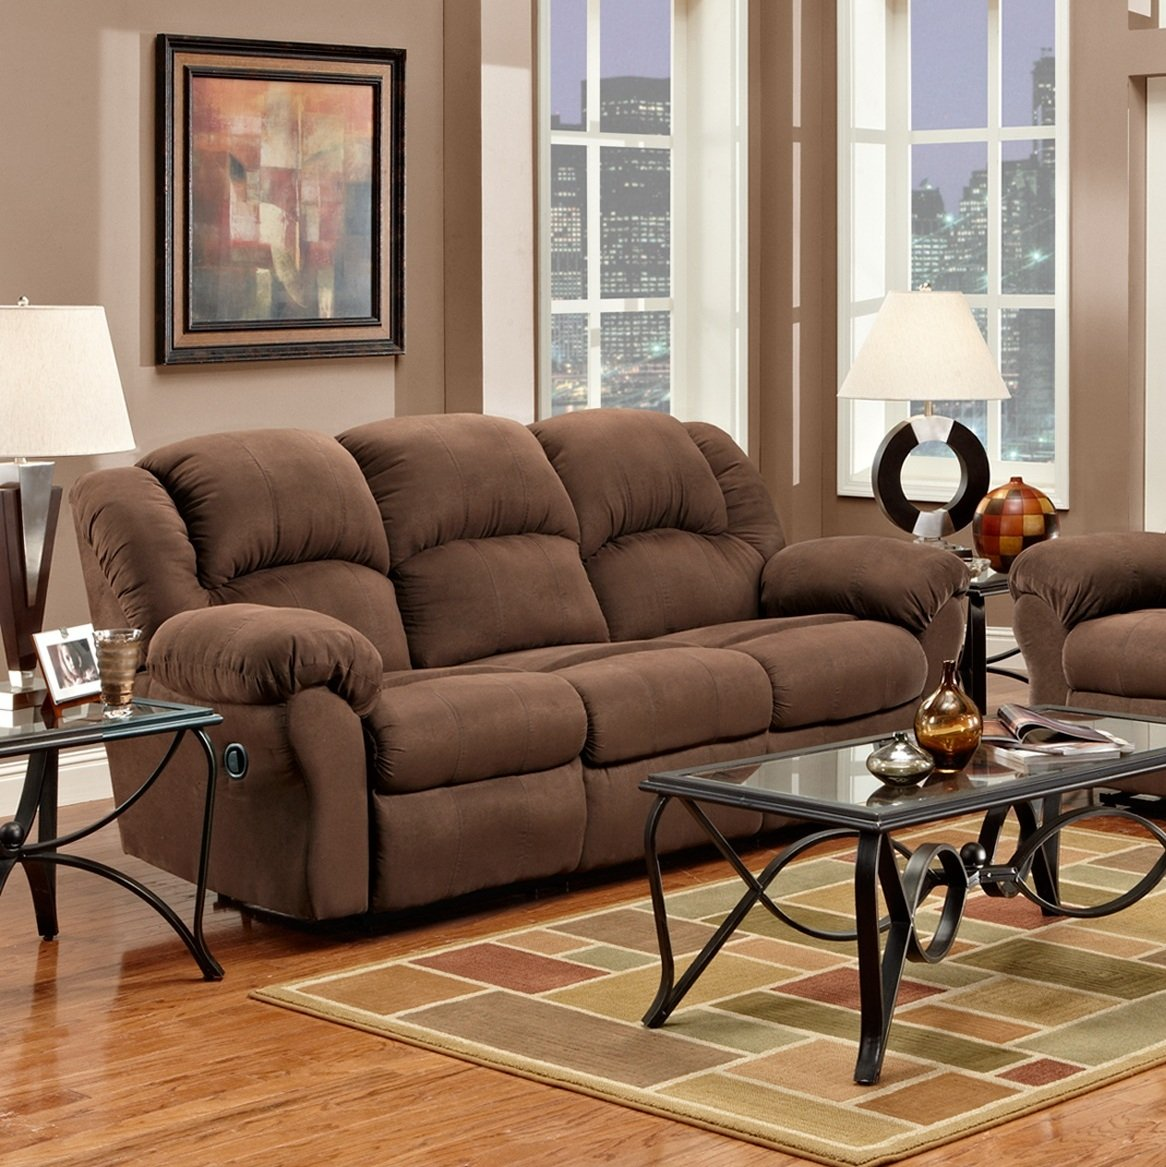 Amazon.com Roundhill Furniture Aruba Microfiber Dual Reclining Sofa Chocolate Kitchen u0026 Dining : microfiber reclining sofa sets - islam-shia.org